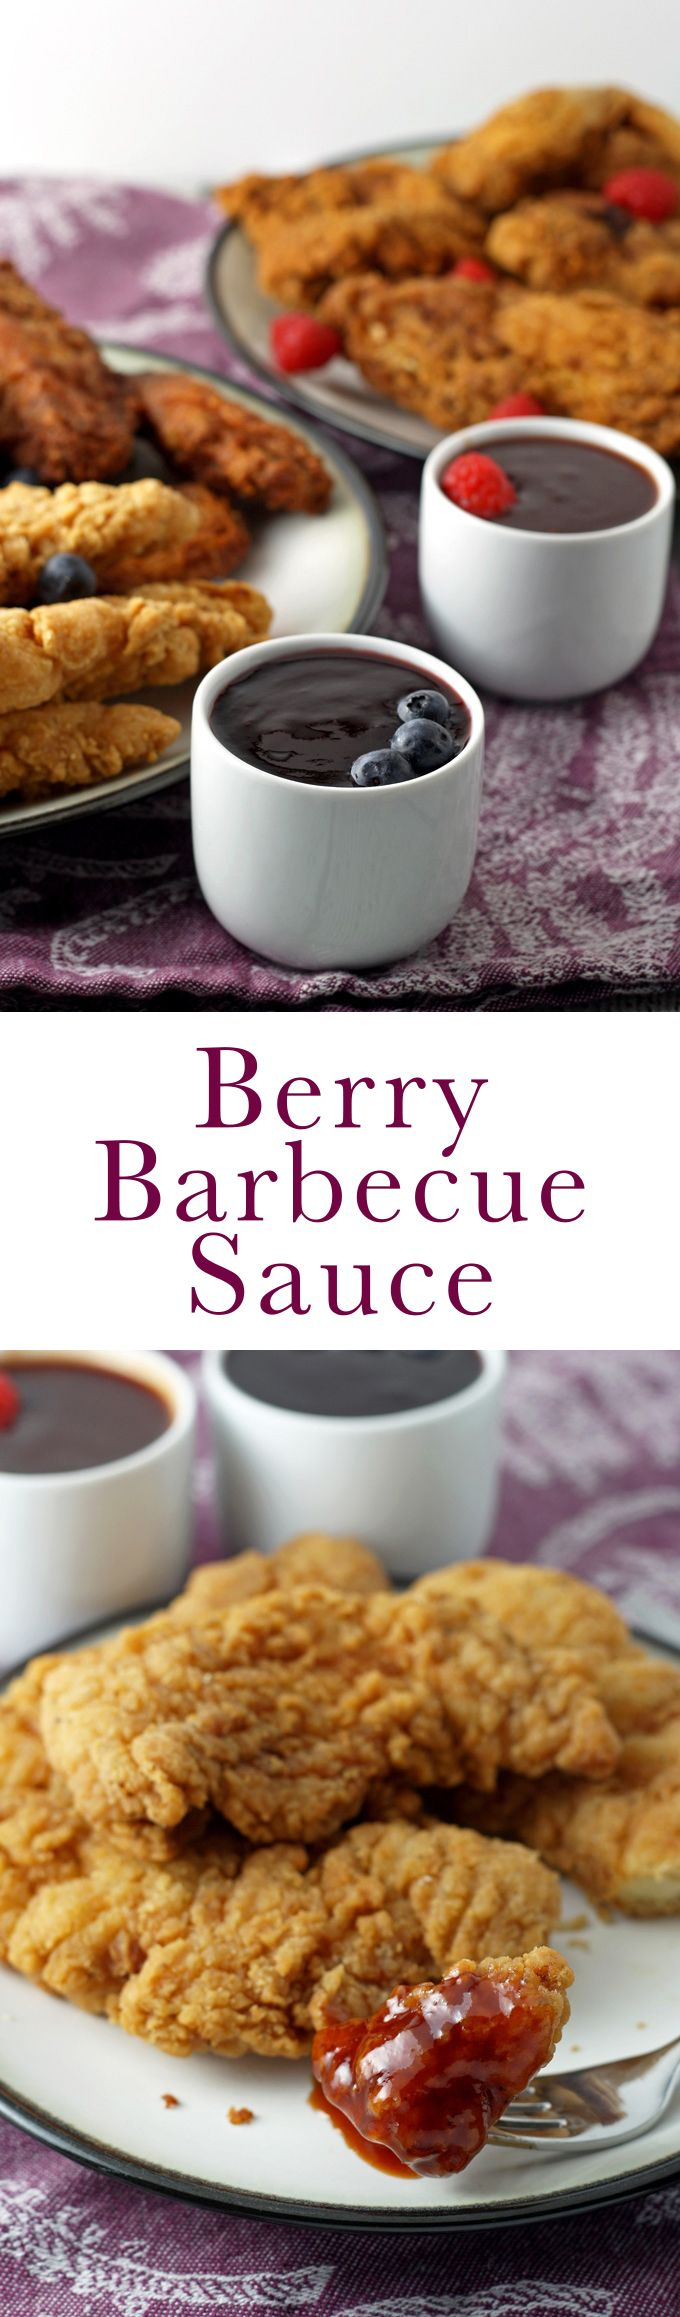 #ad This berry barbecue sauce recipe can be made with raspberries or blueberries. Dip fried chicken into it for a fun, fruity addition to dinner! #SummerYum #cbias